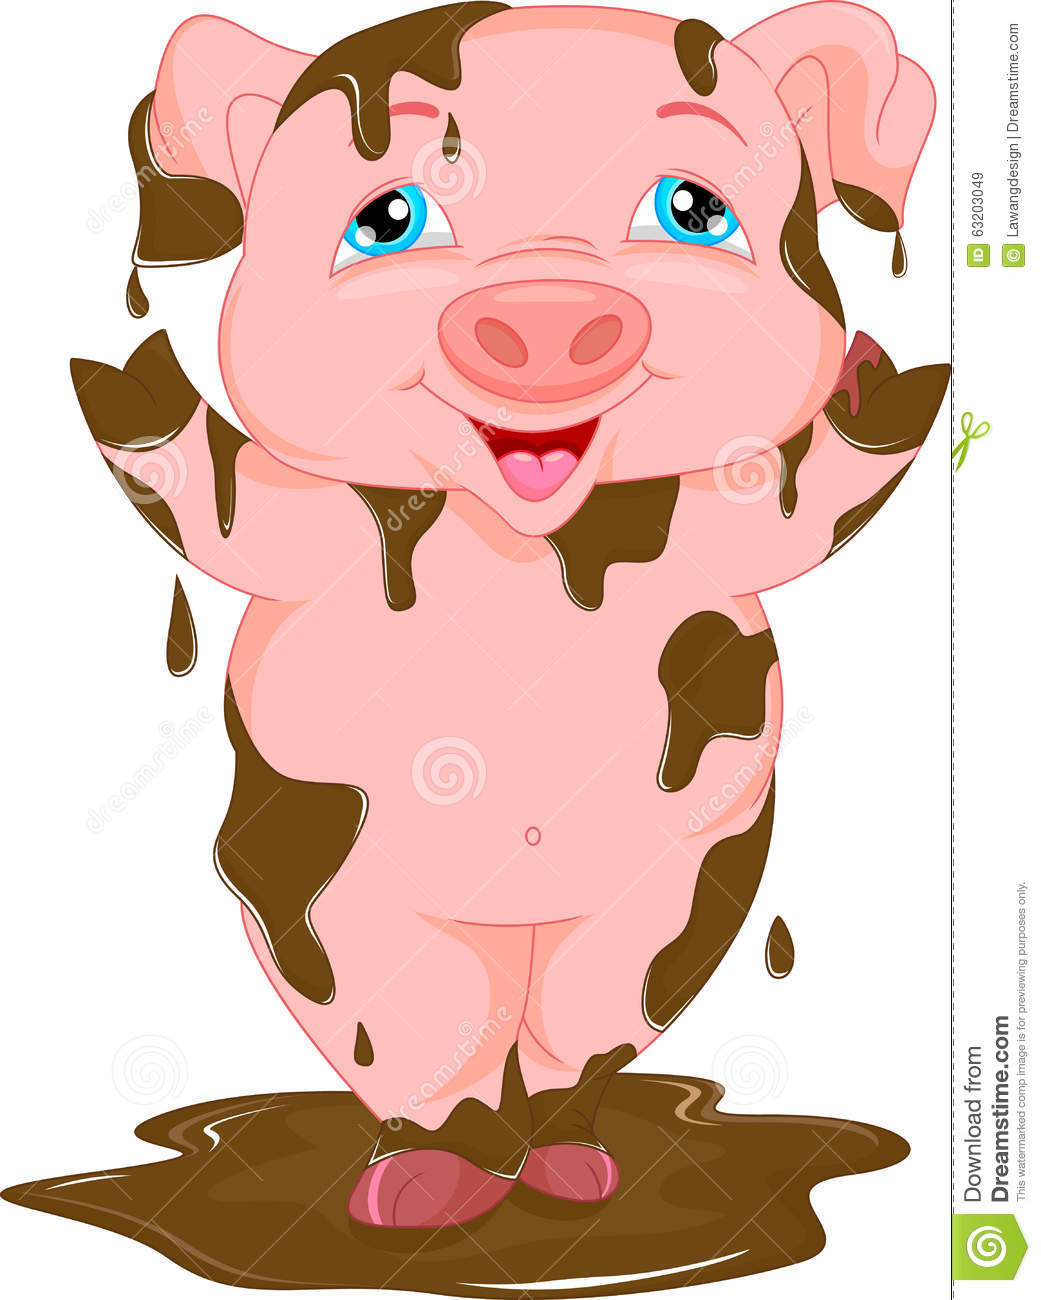 Animated pigs standing - photo#17